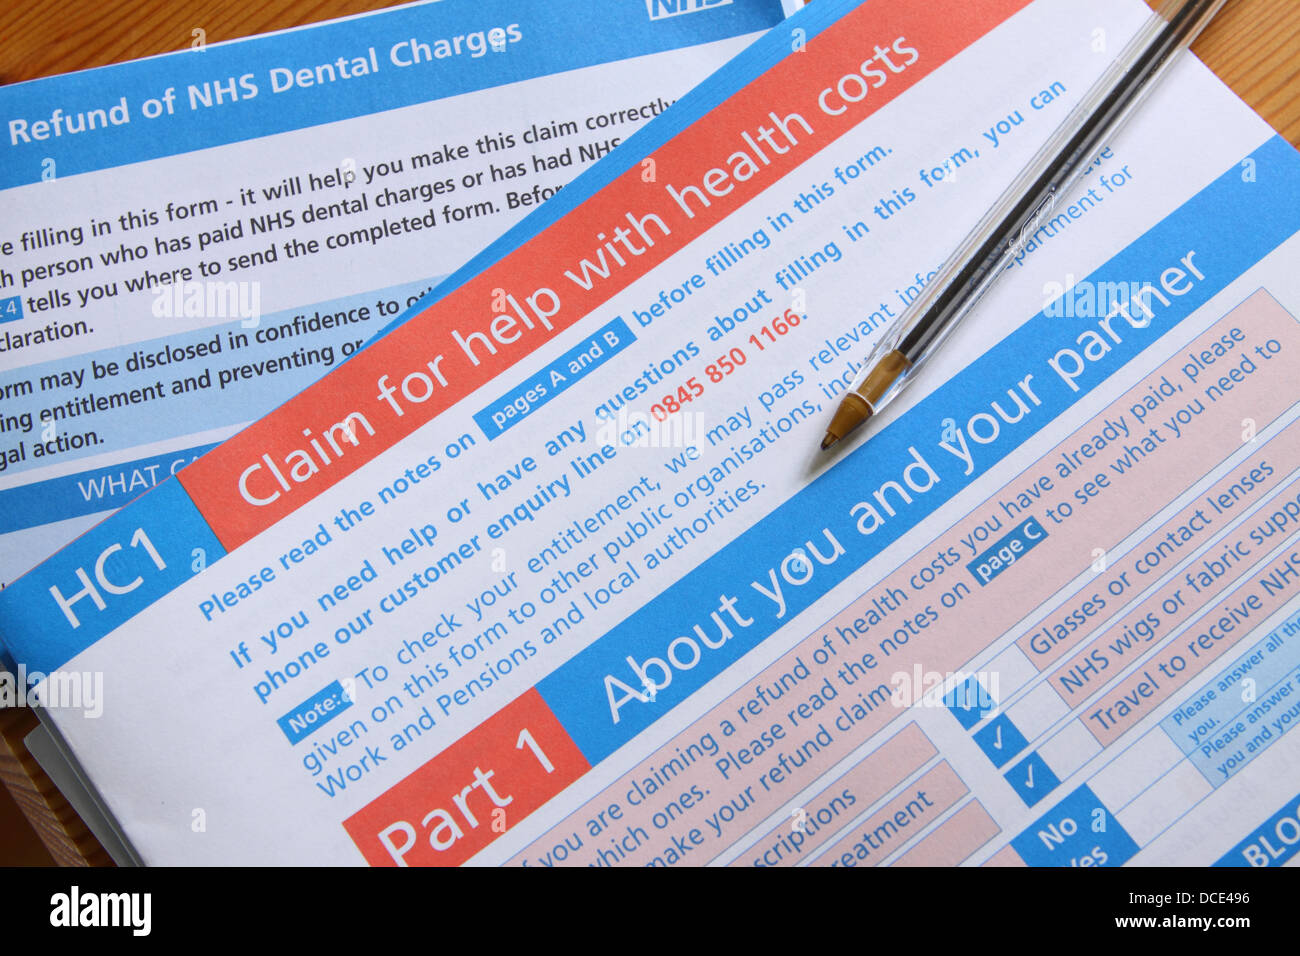 HC1 NHS claim form for help with medical and dental expenses - Stock Image